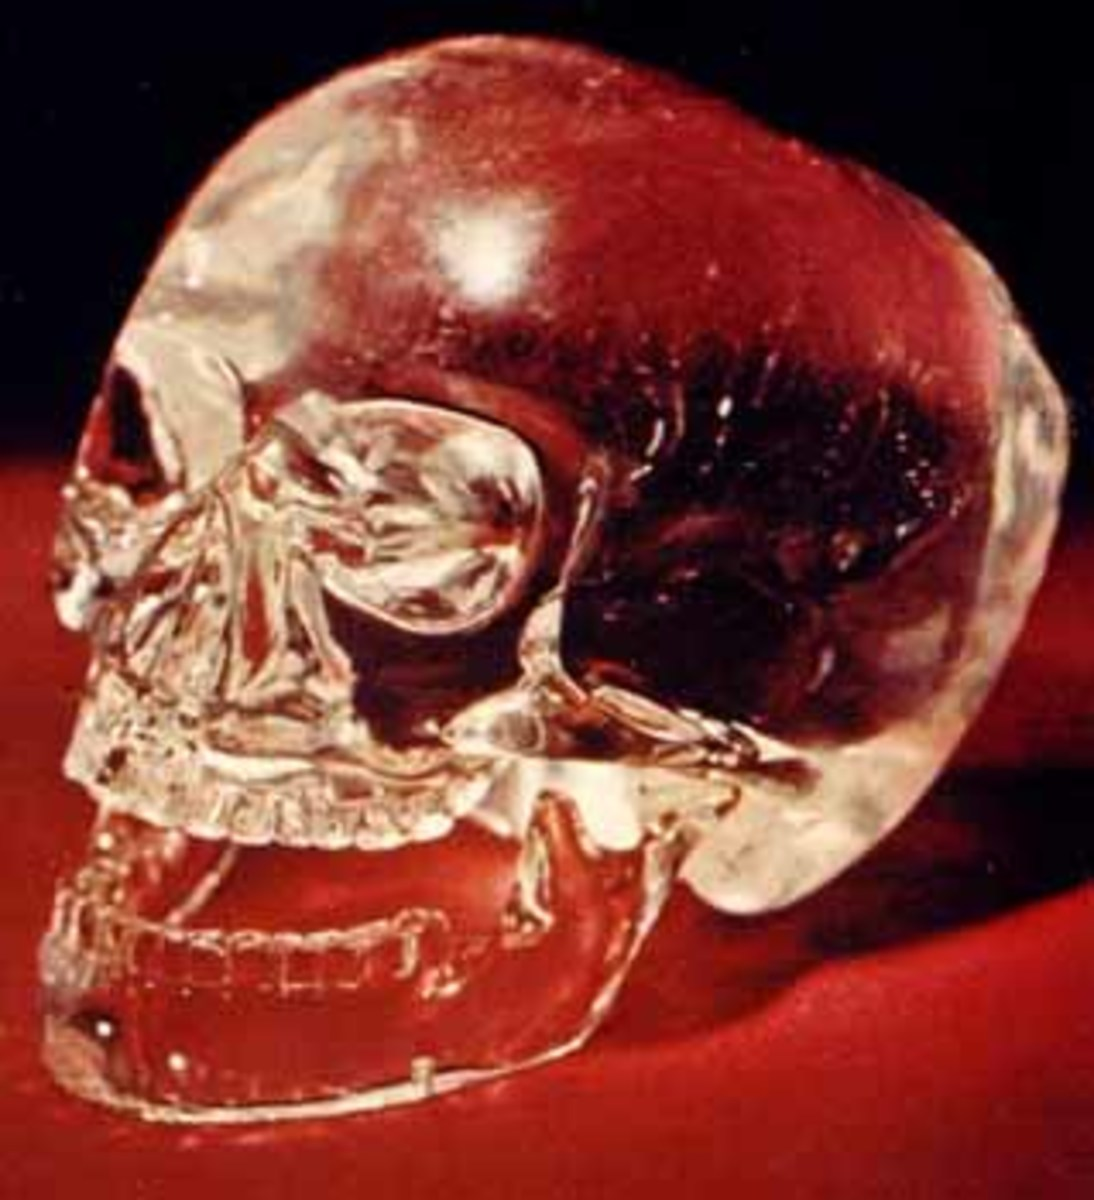 mitchell-hedges-skull-fact-or-fiction